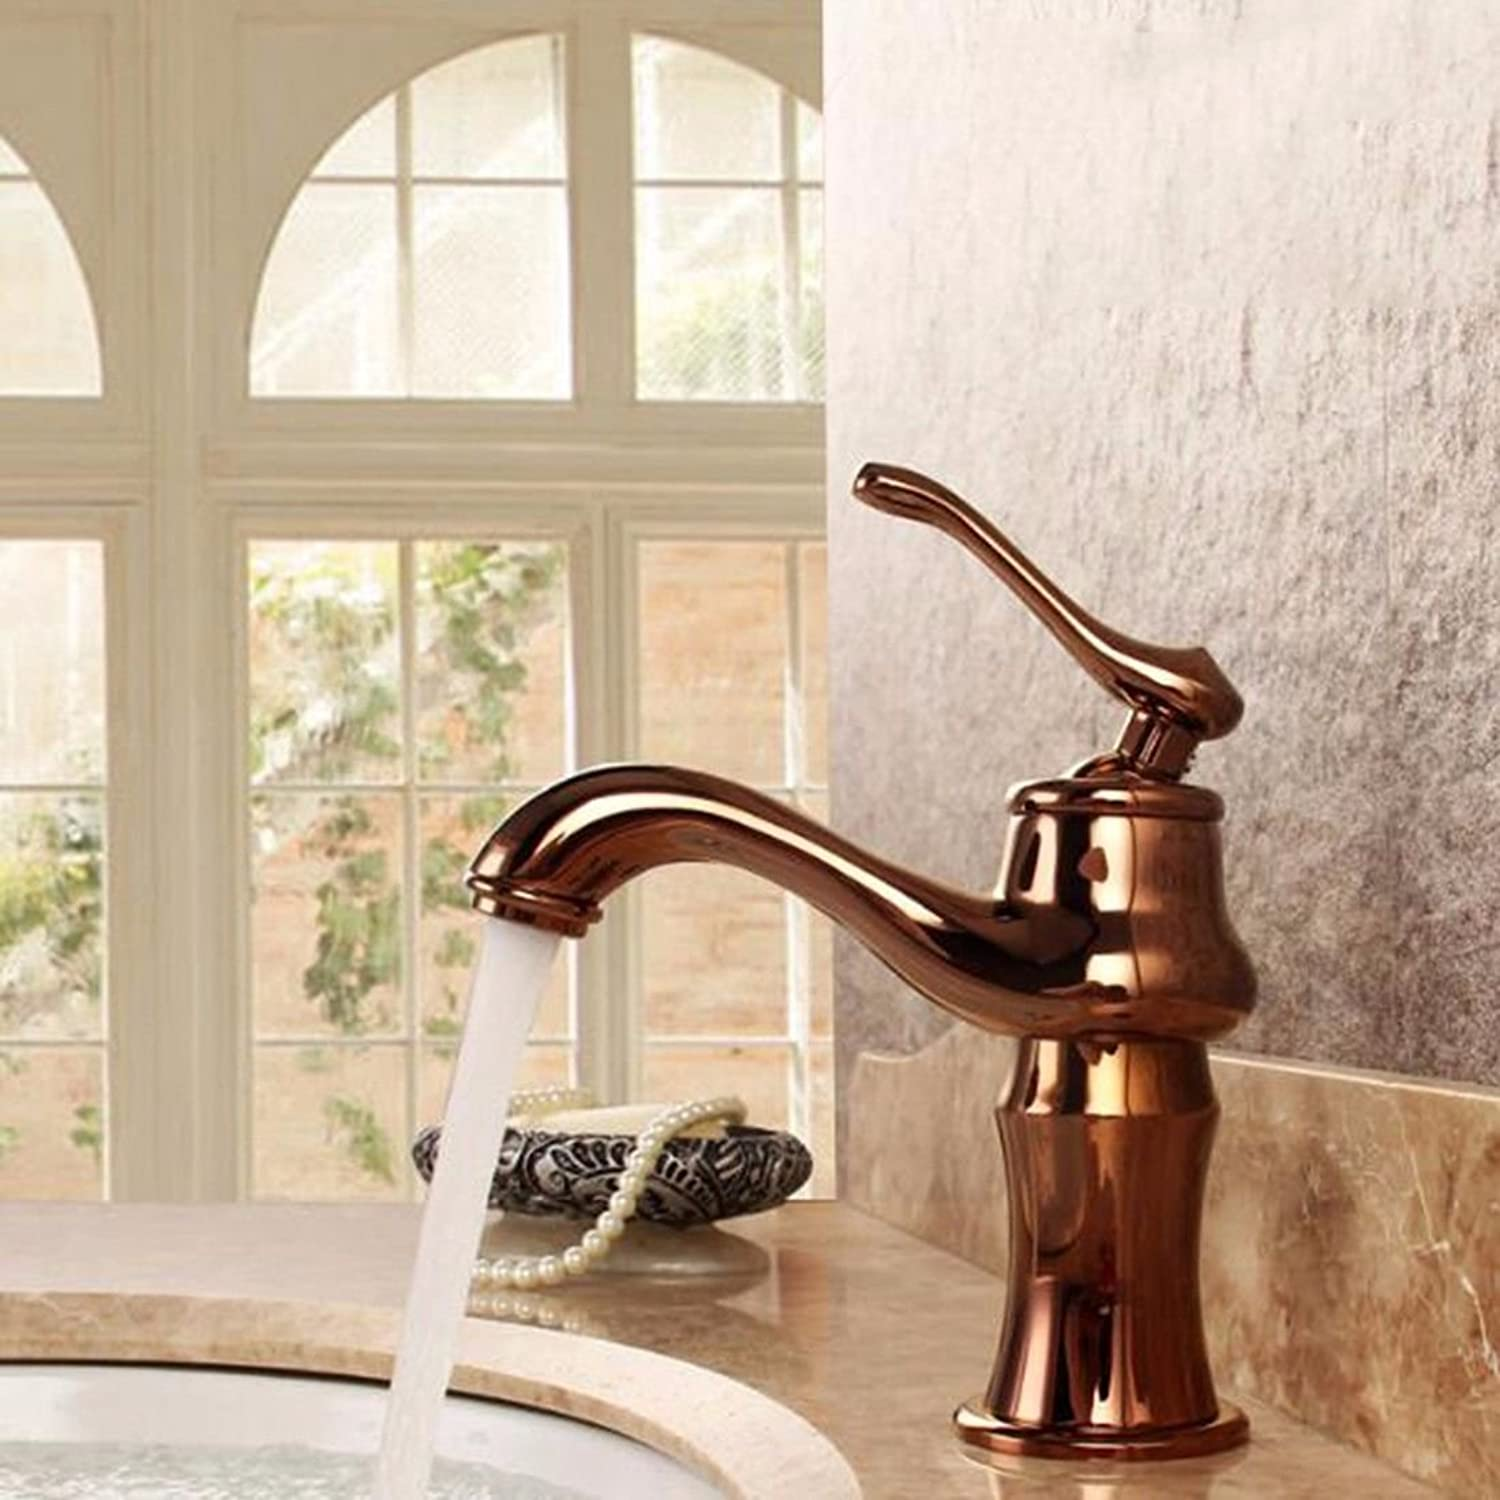 NewBorn Faucet Water Taps Hot And Cold Water Basin Cold Water Tap Antique Wash Basins Wash Basins Full Copper Single Hole Single Handle Water Tap Antique